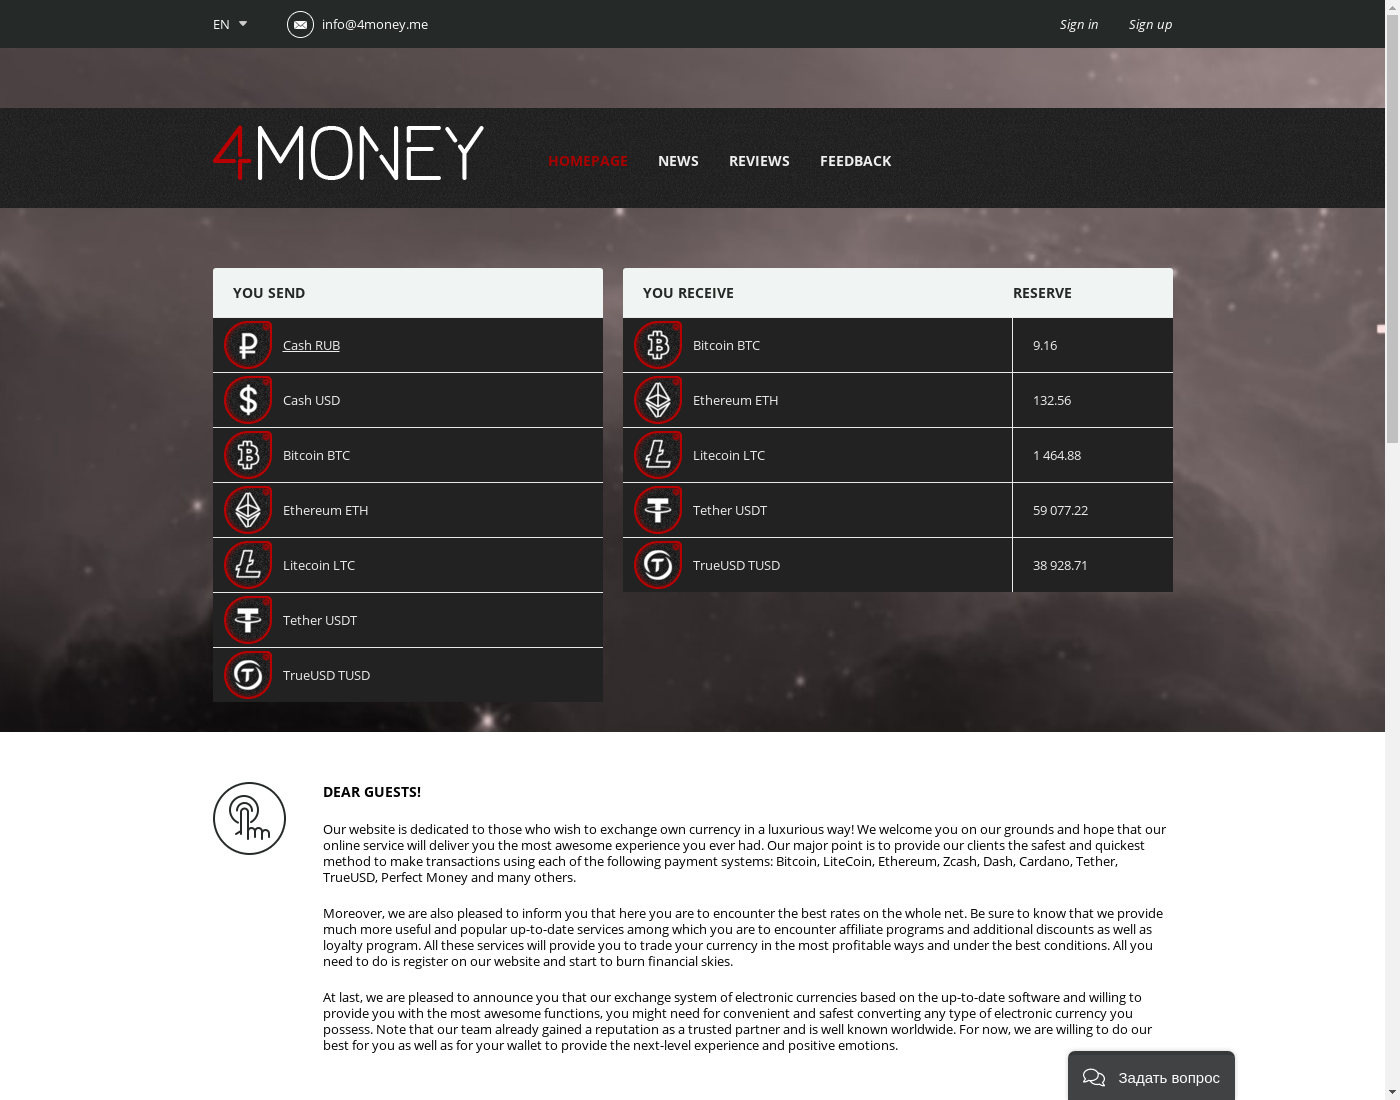 4money user interface: the home page in English